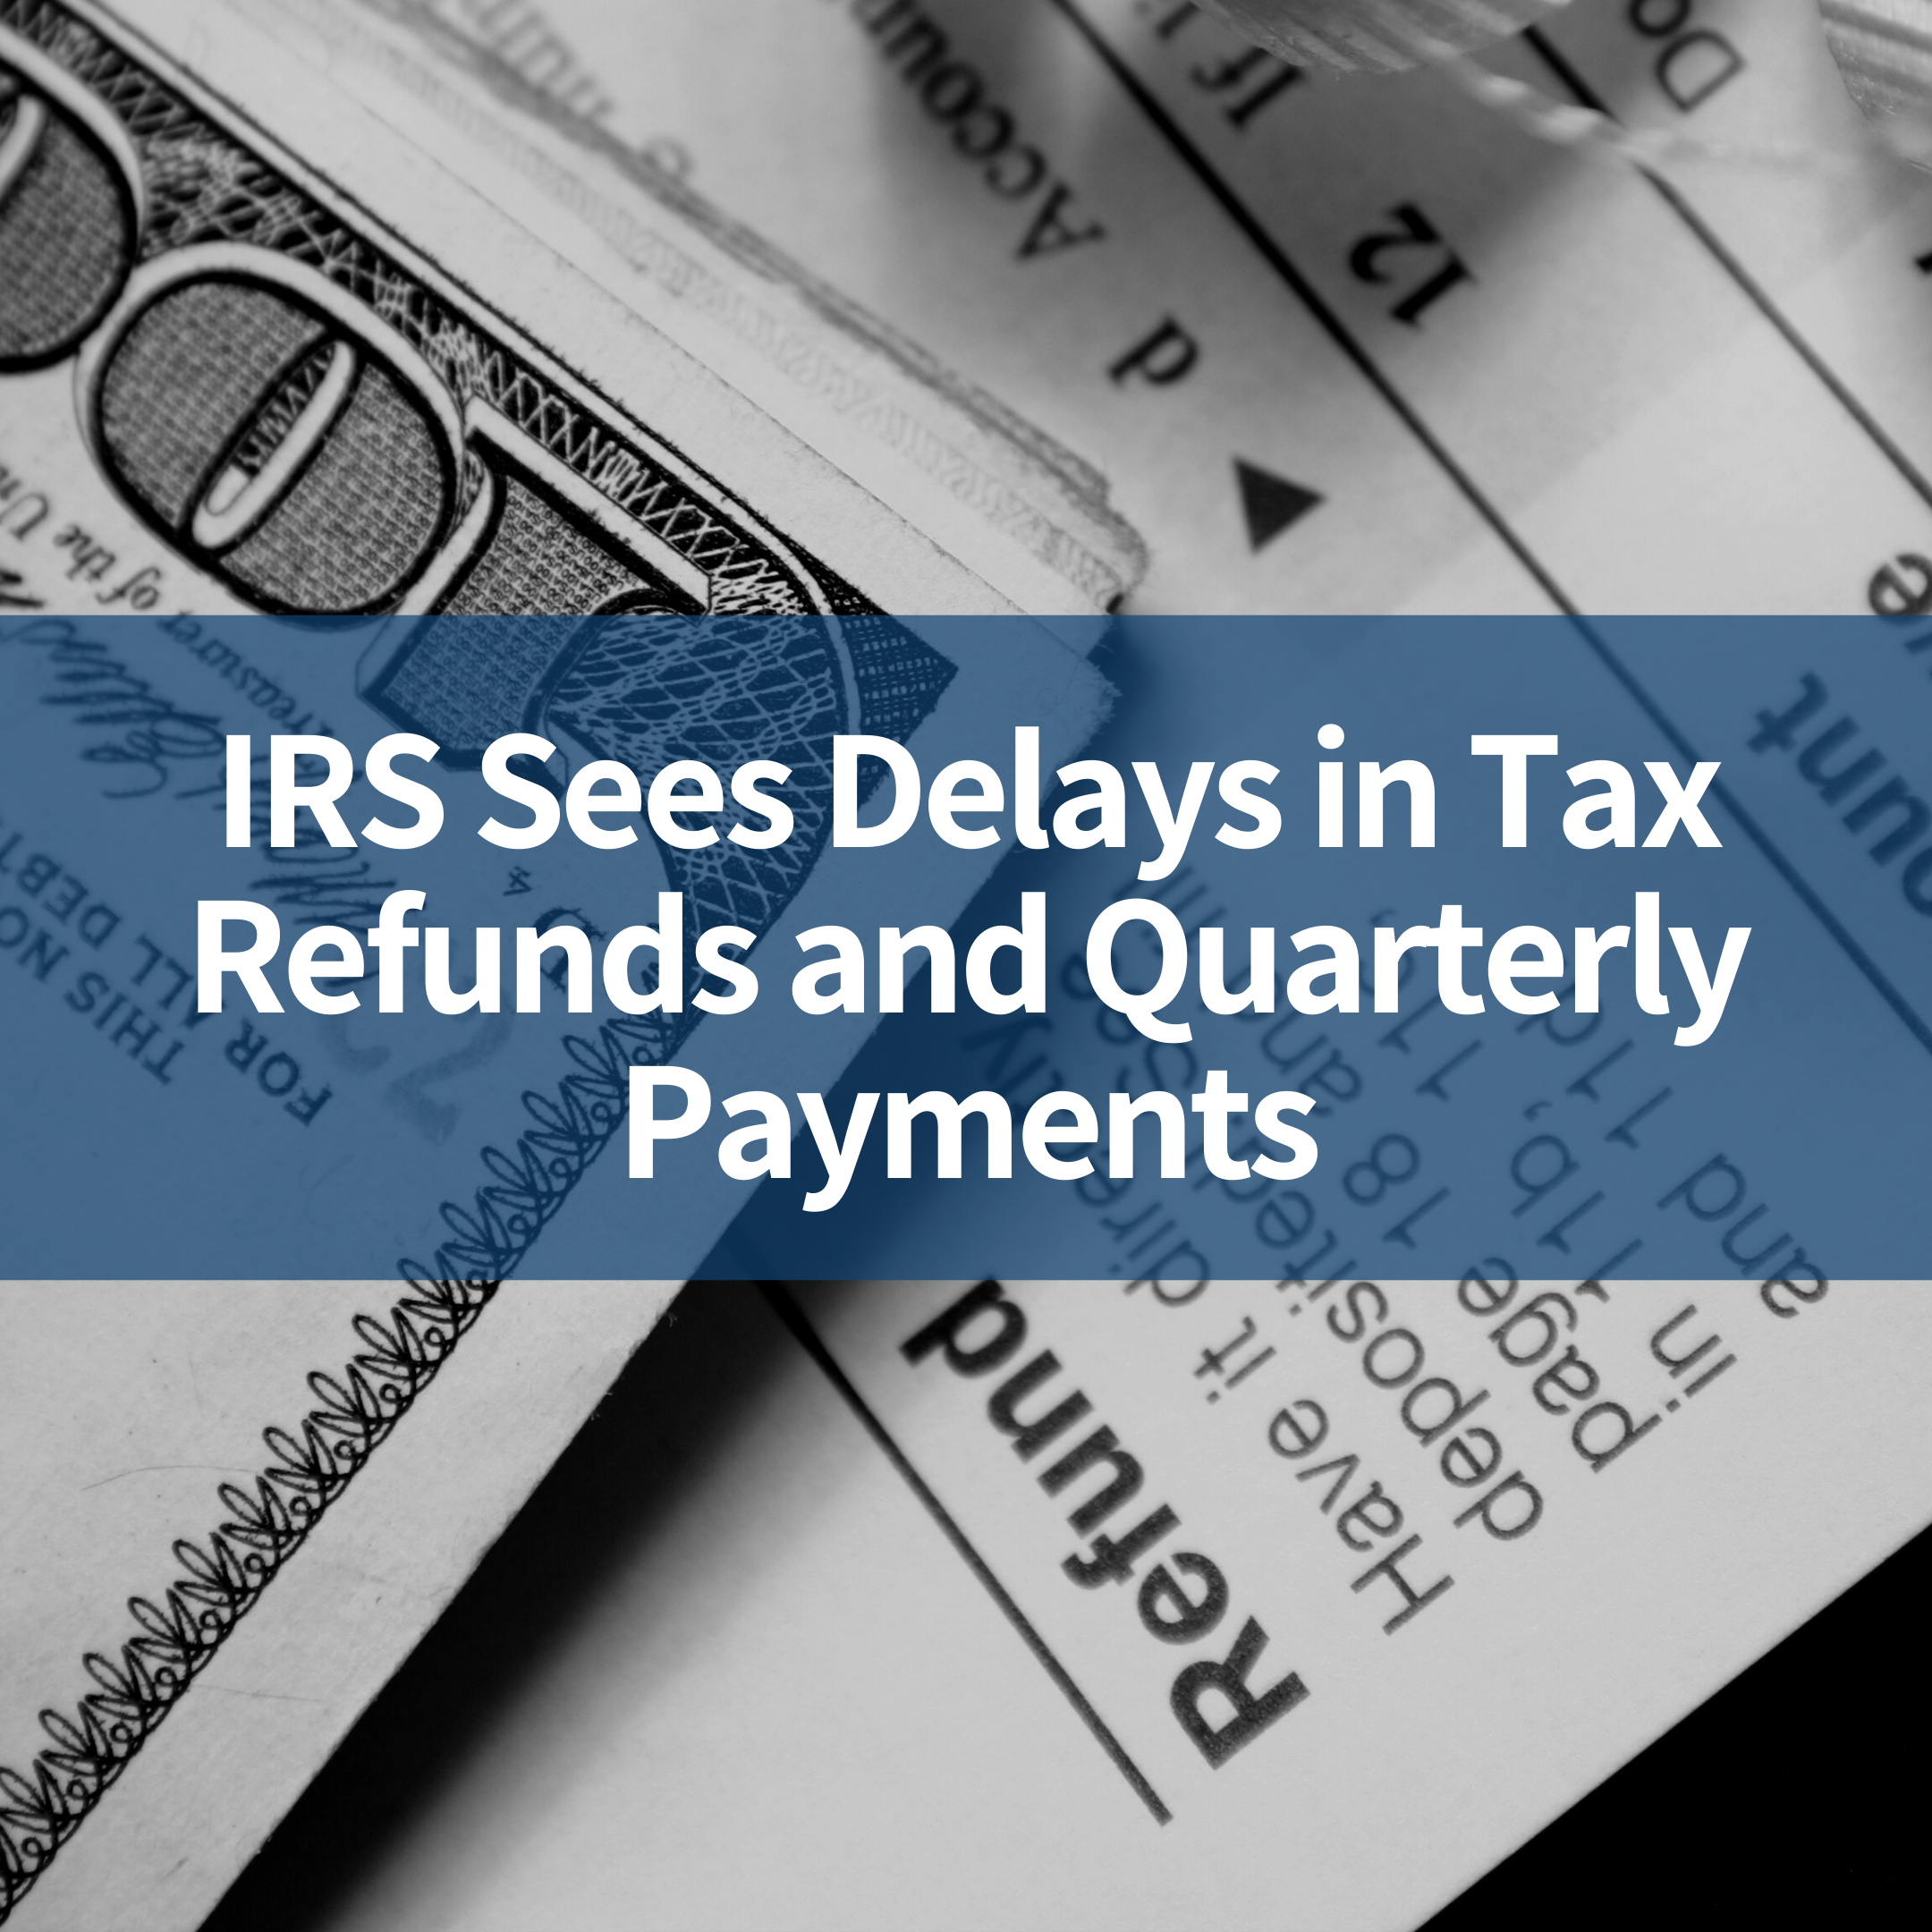 IRS Sees Delays in Tax Refunds and Quarterly Payments